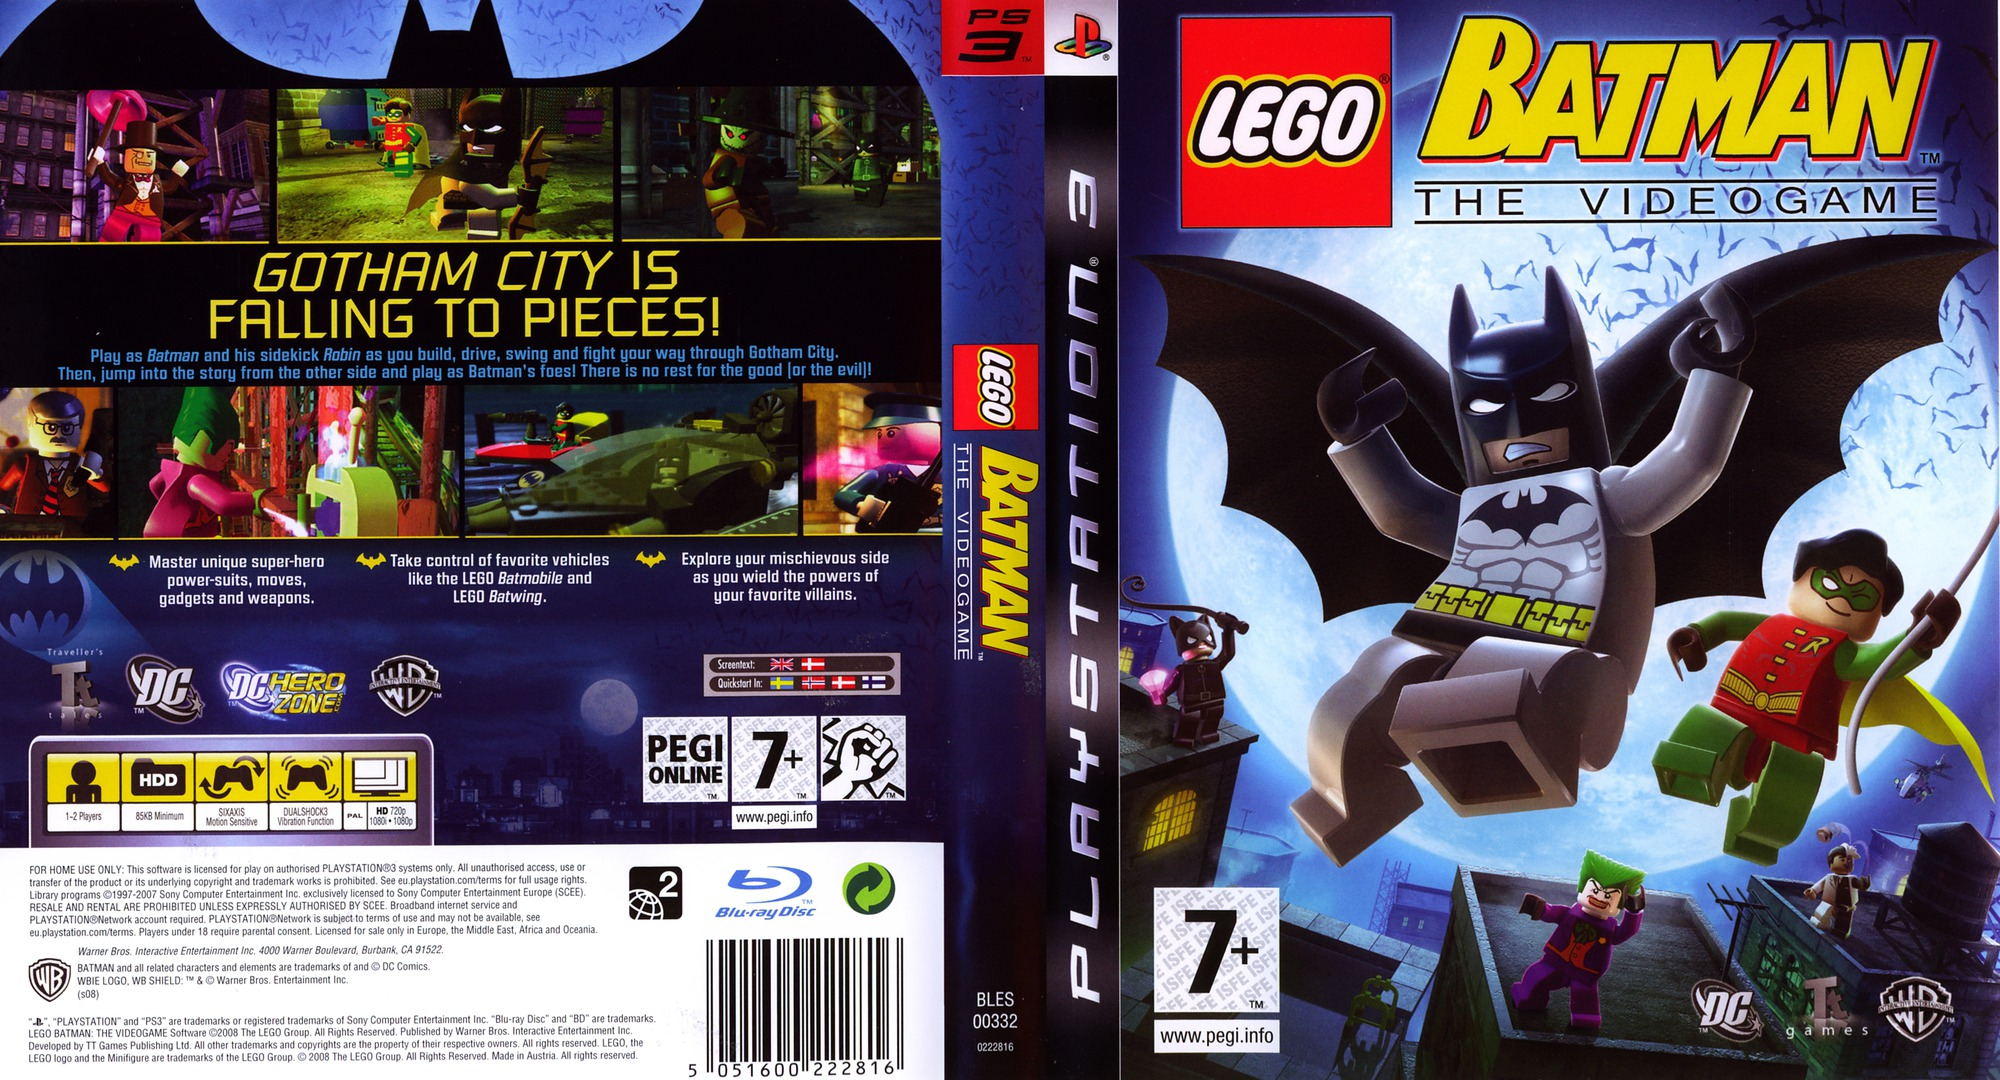 Release Date >> BLES00332 - LEGO Batman: The Videogame